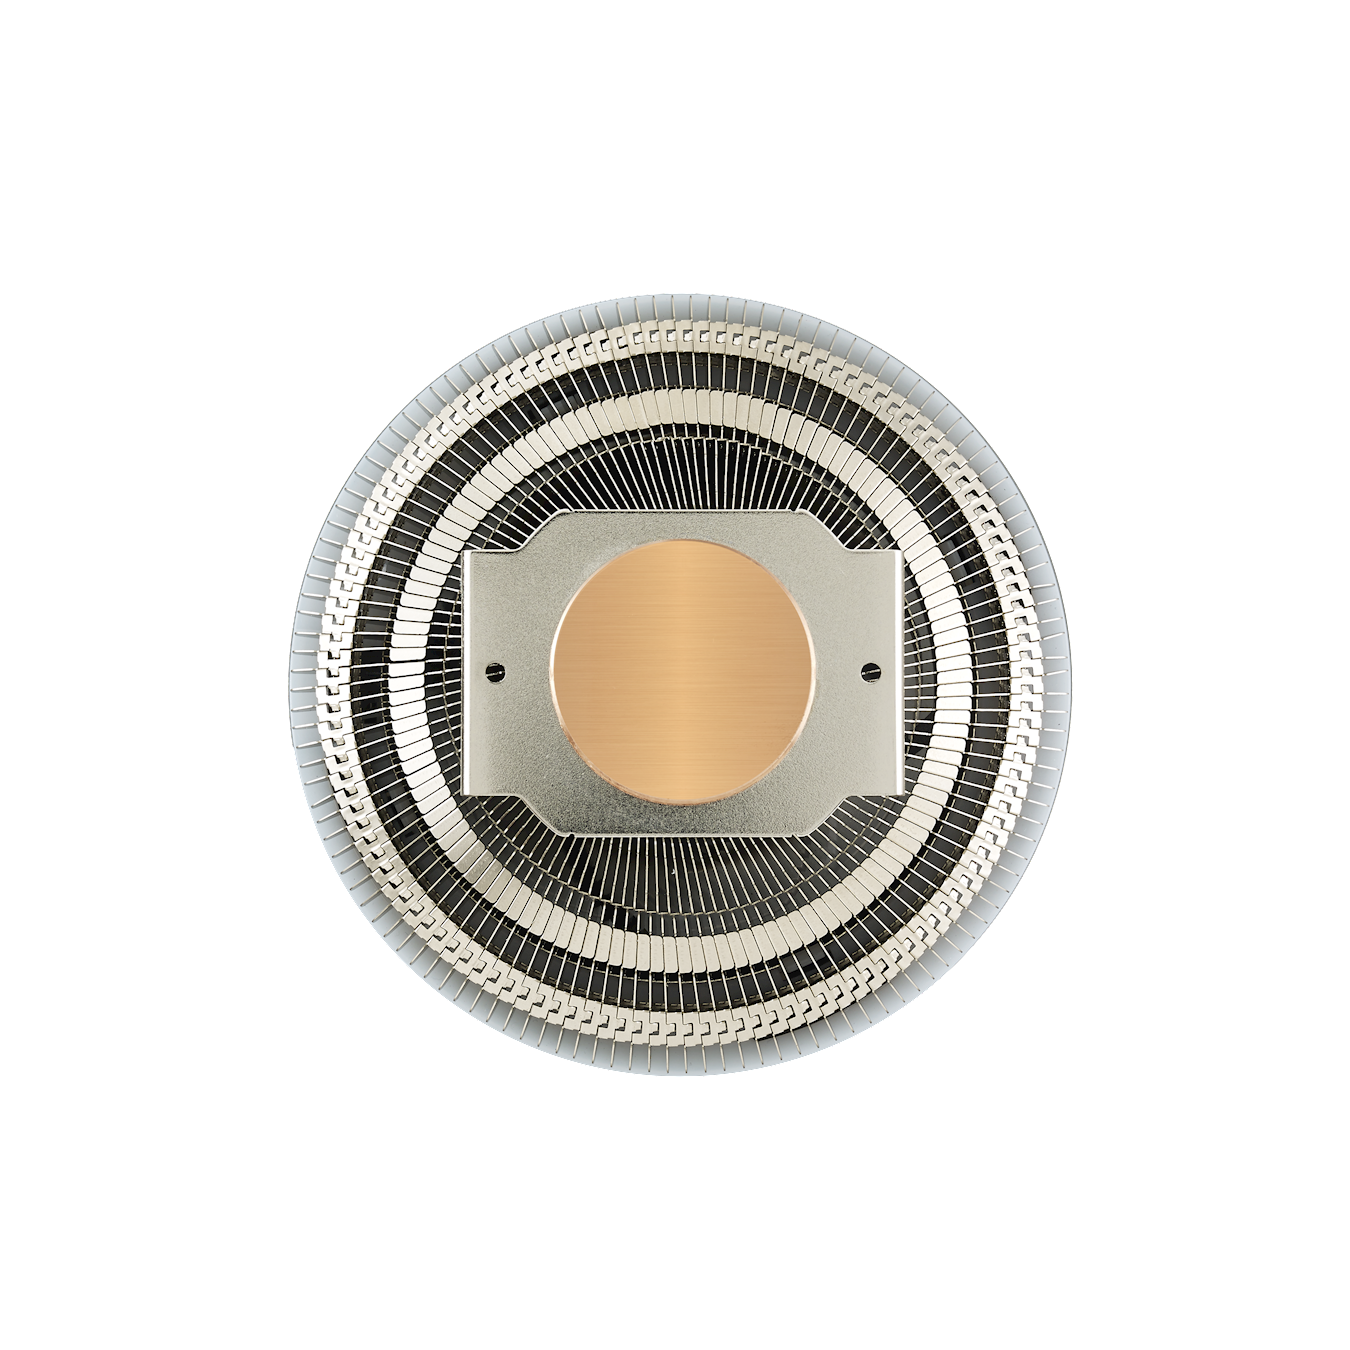 Custom Heat Column technology increases the direct contact surface area for exceptional heat transfer and cooling performance